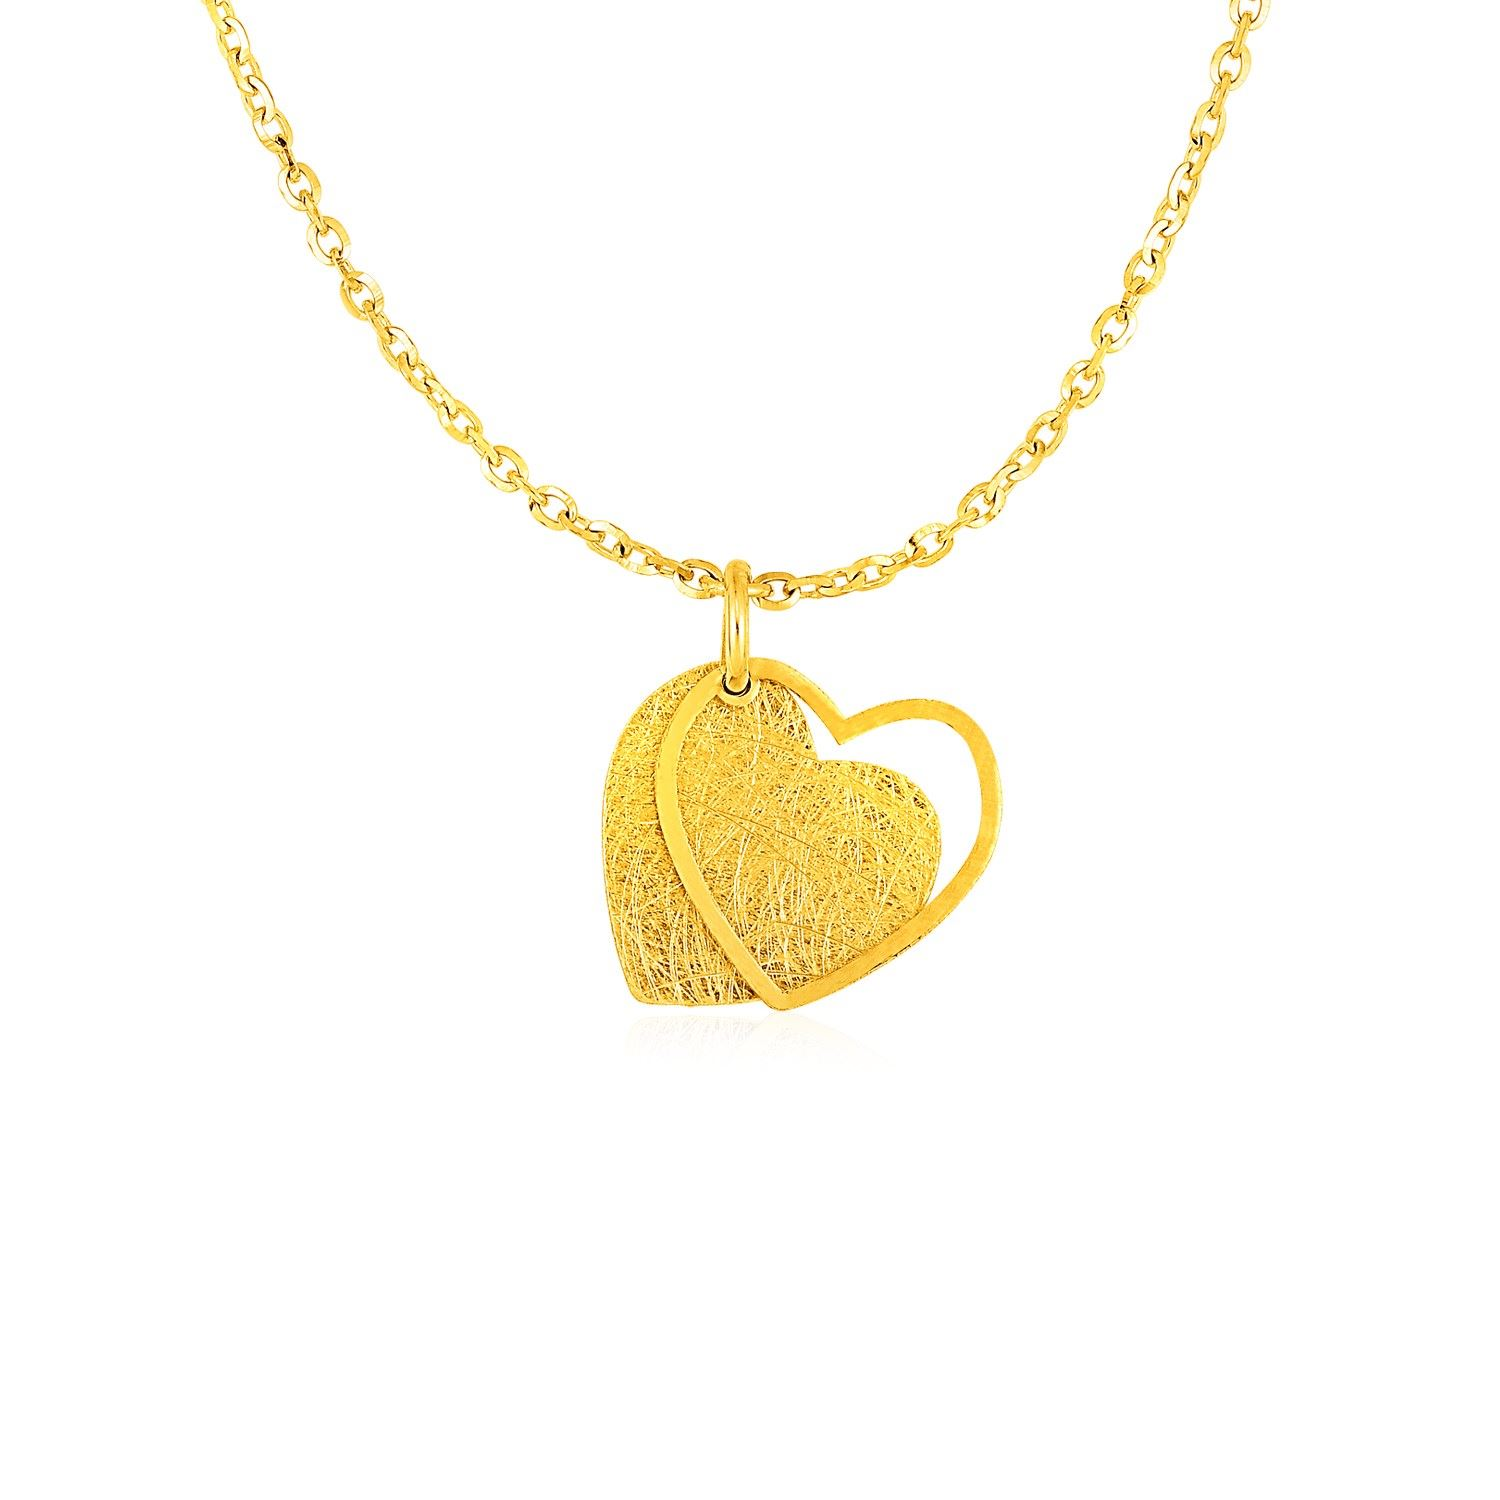 c0ea52f5e03d9 Two Layer Heart Pendant in 14K Yellow Gold